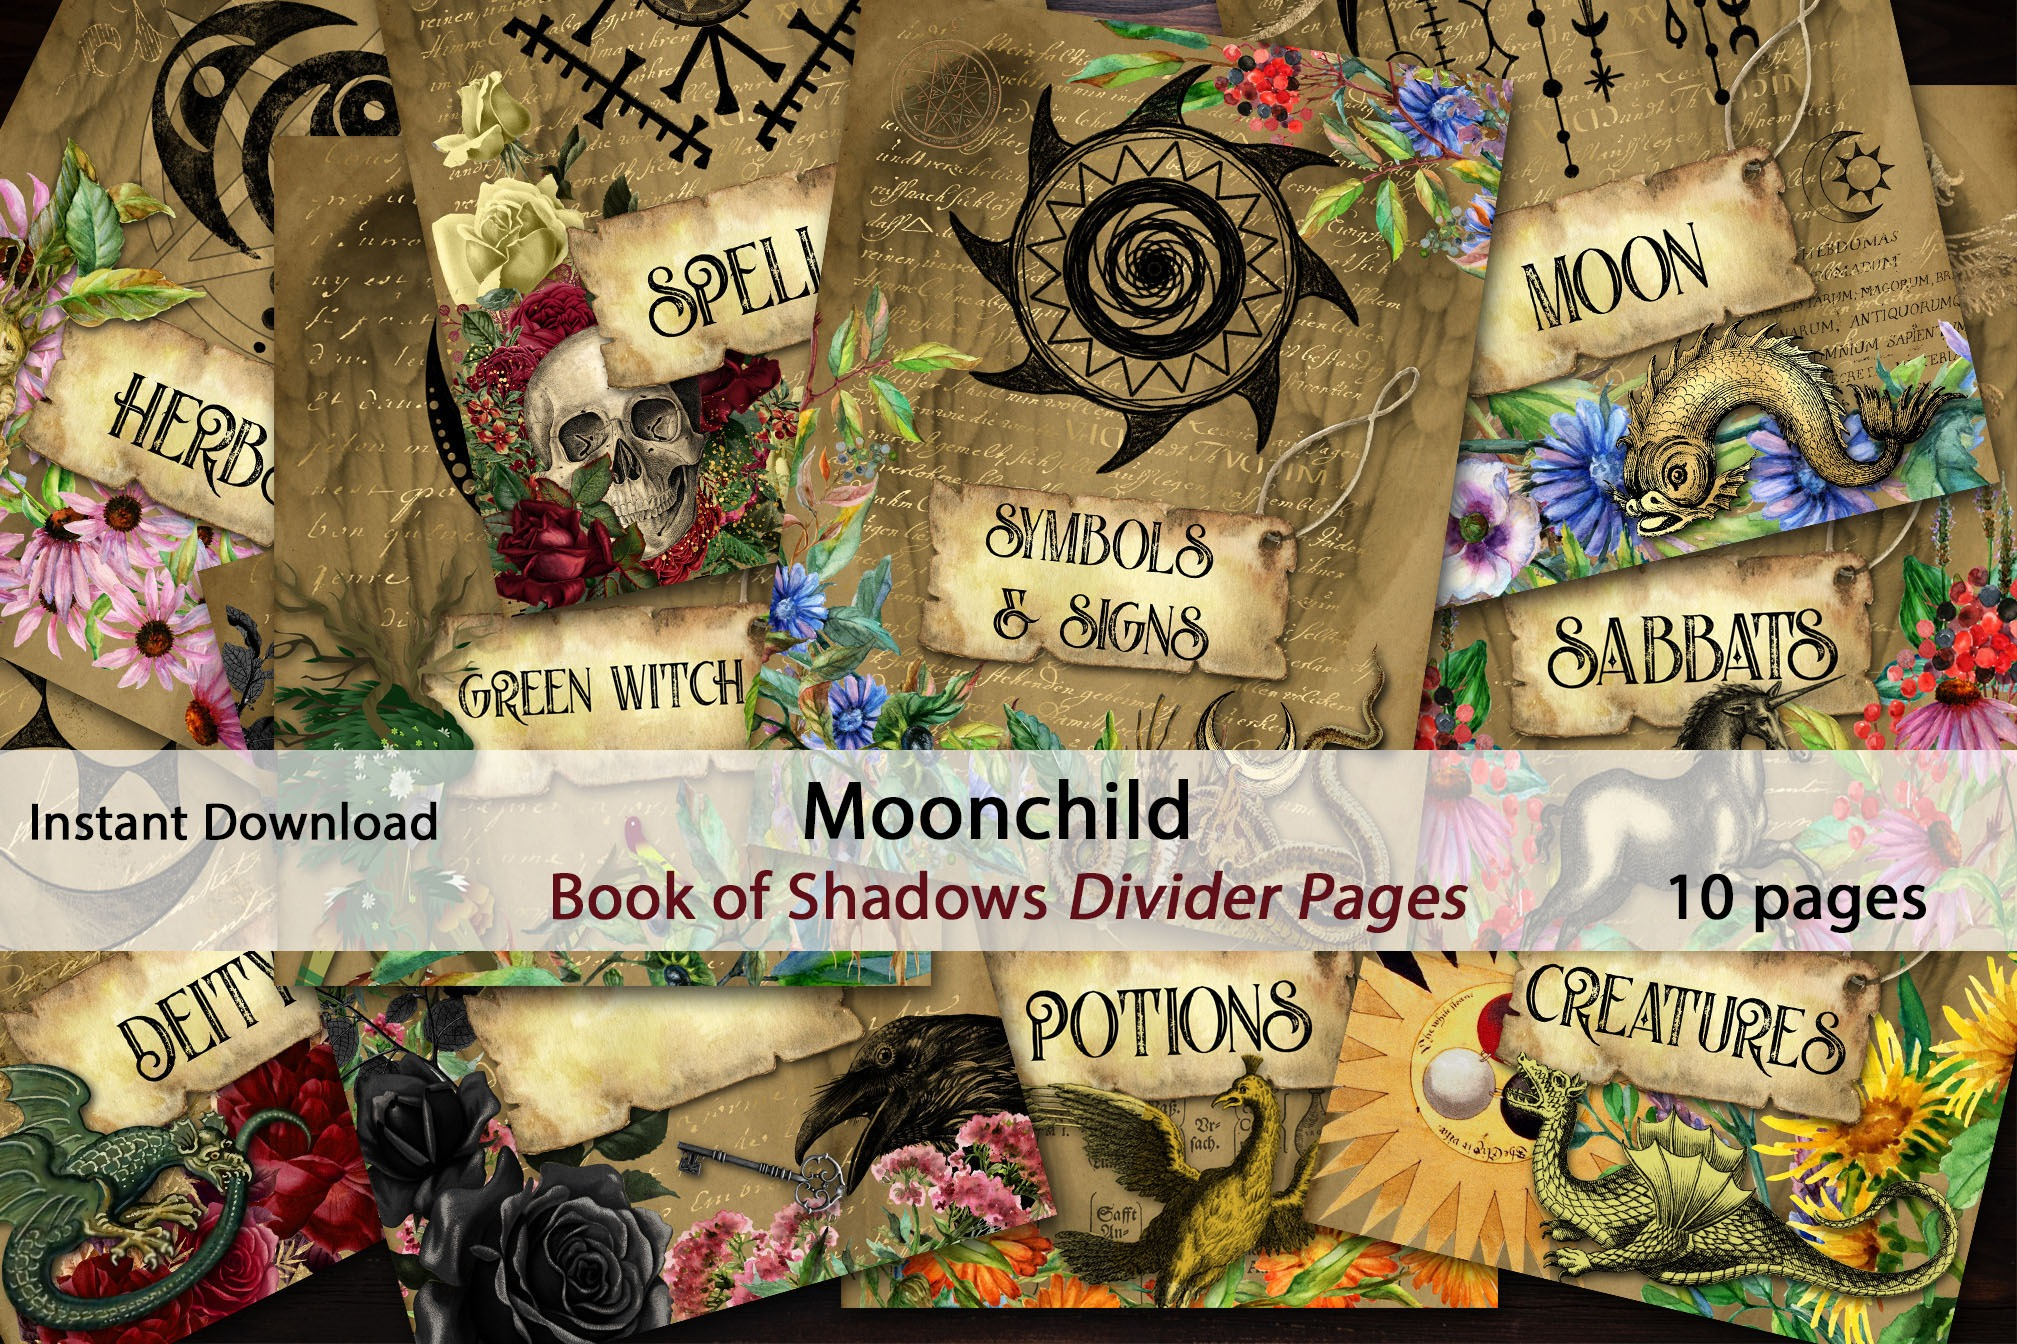 TITLE PAGES for Book of Shadows  MOONCHILD  10 pages  Grimoire Dividers